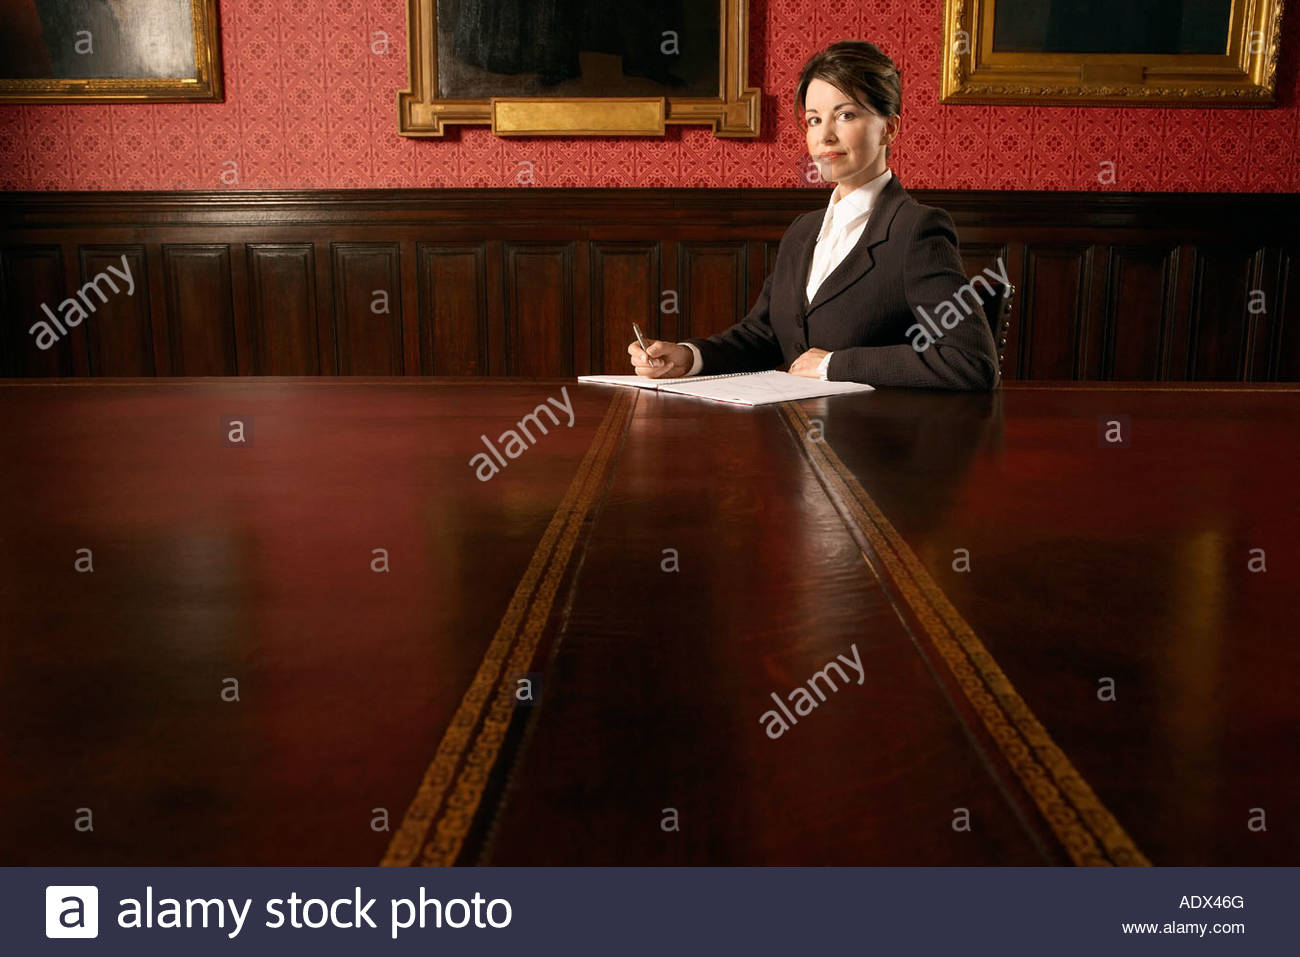 woman-in-conference-room-sitting-ADX46G.